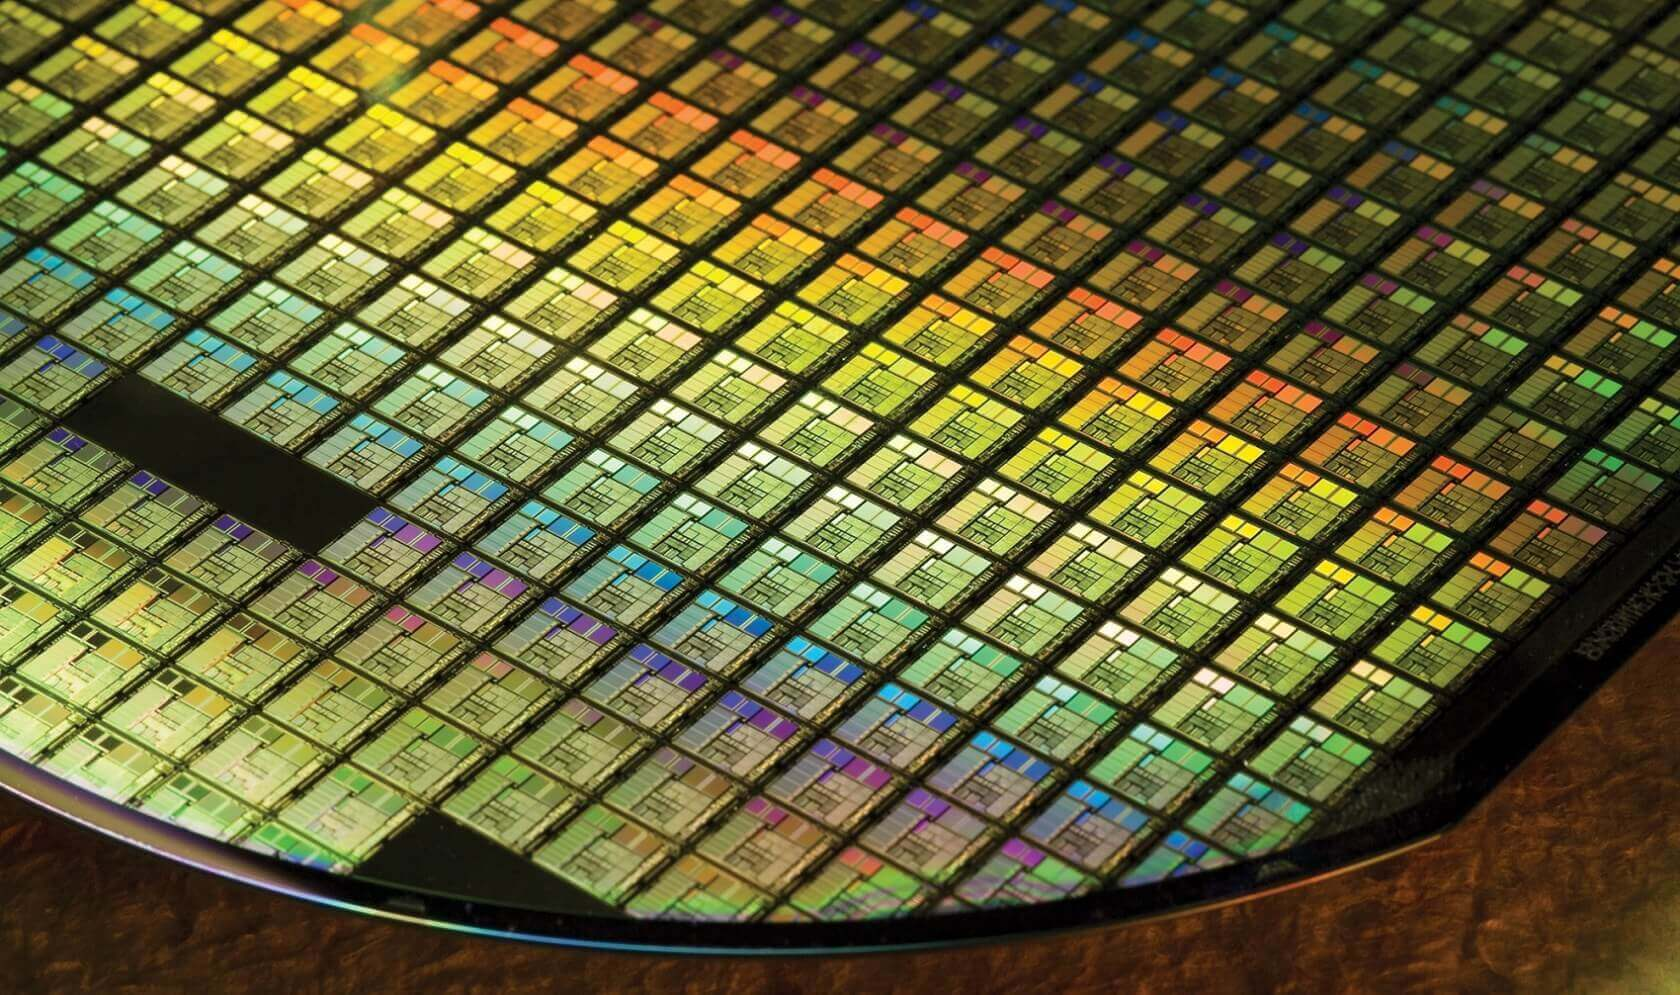 TSMC's stacked wafer tech could double the power of Nvidia